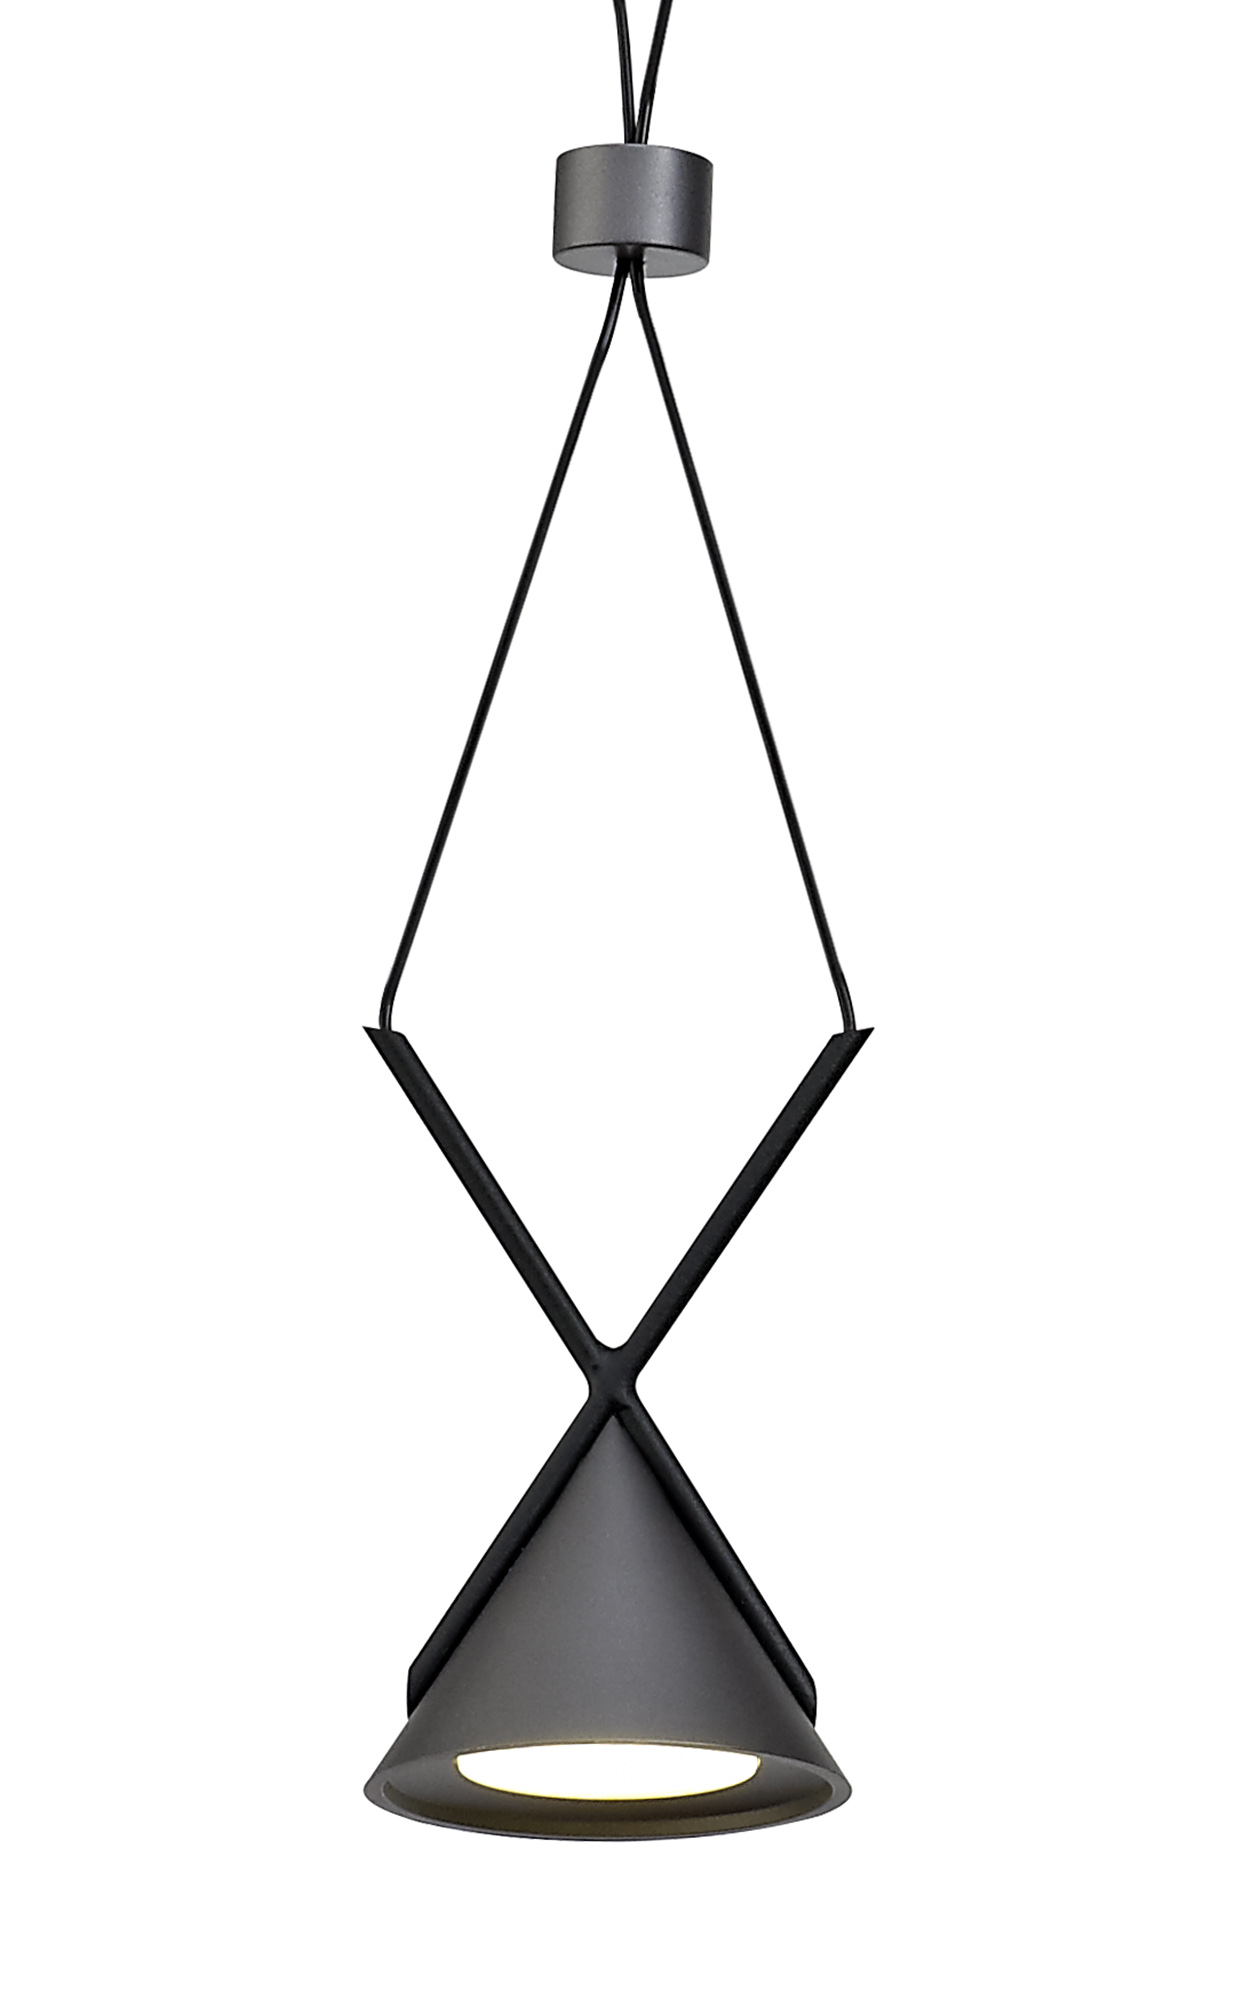 Bar Linear Pendant 3 Light, 3 x 3W LED, 3000K, 350lm, Sand Black/Grey, 3yrs Warranty